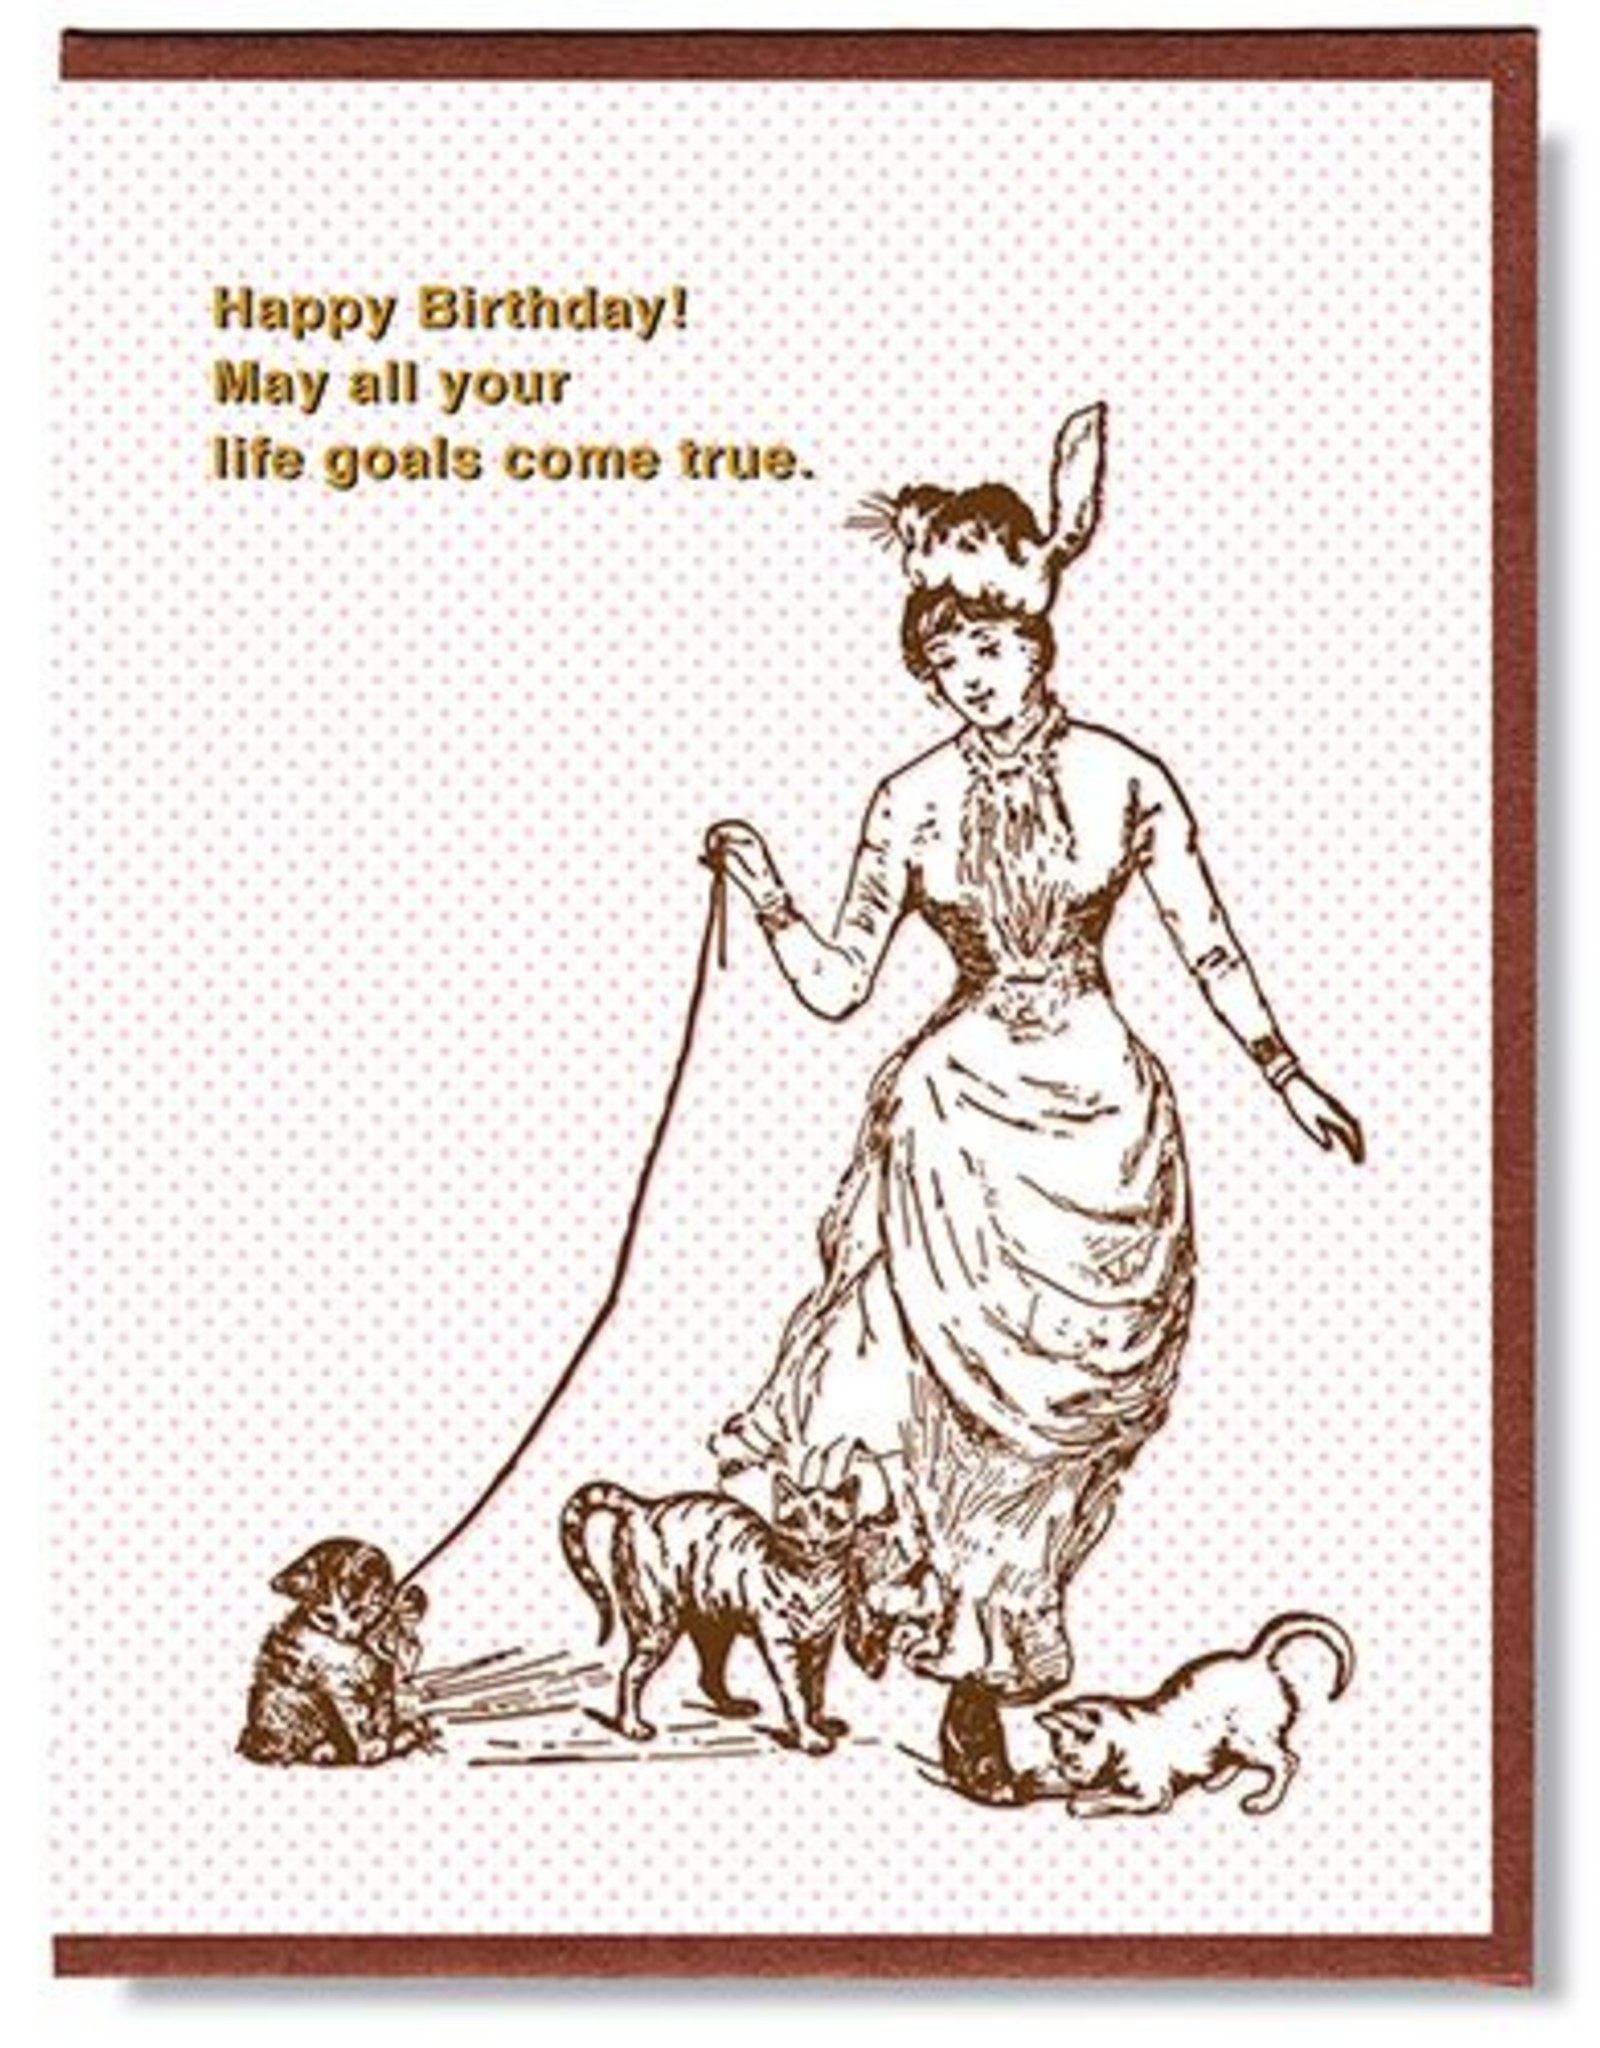 Happy Birthday! Cat Goals Greeting Card